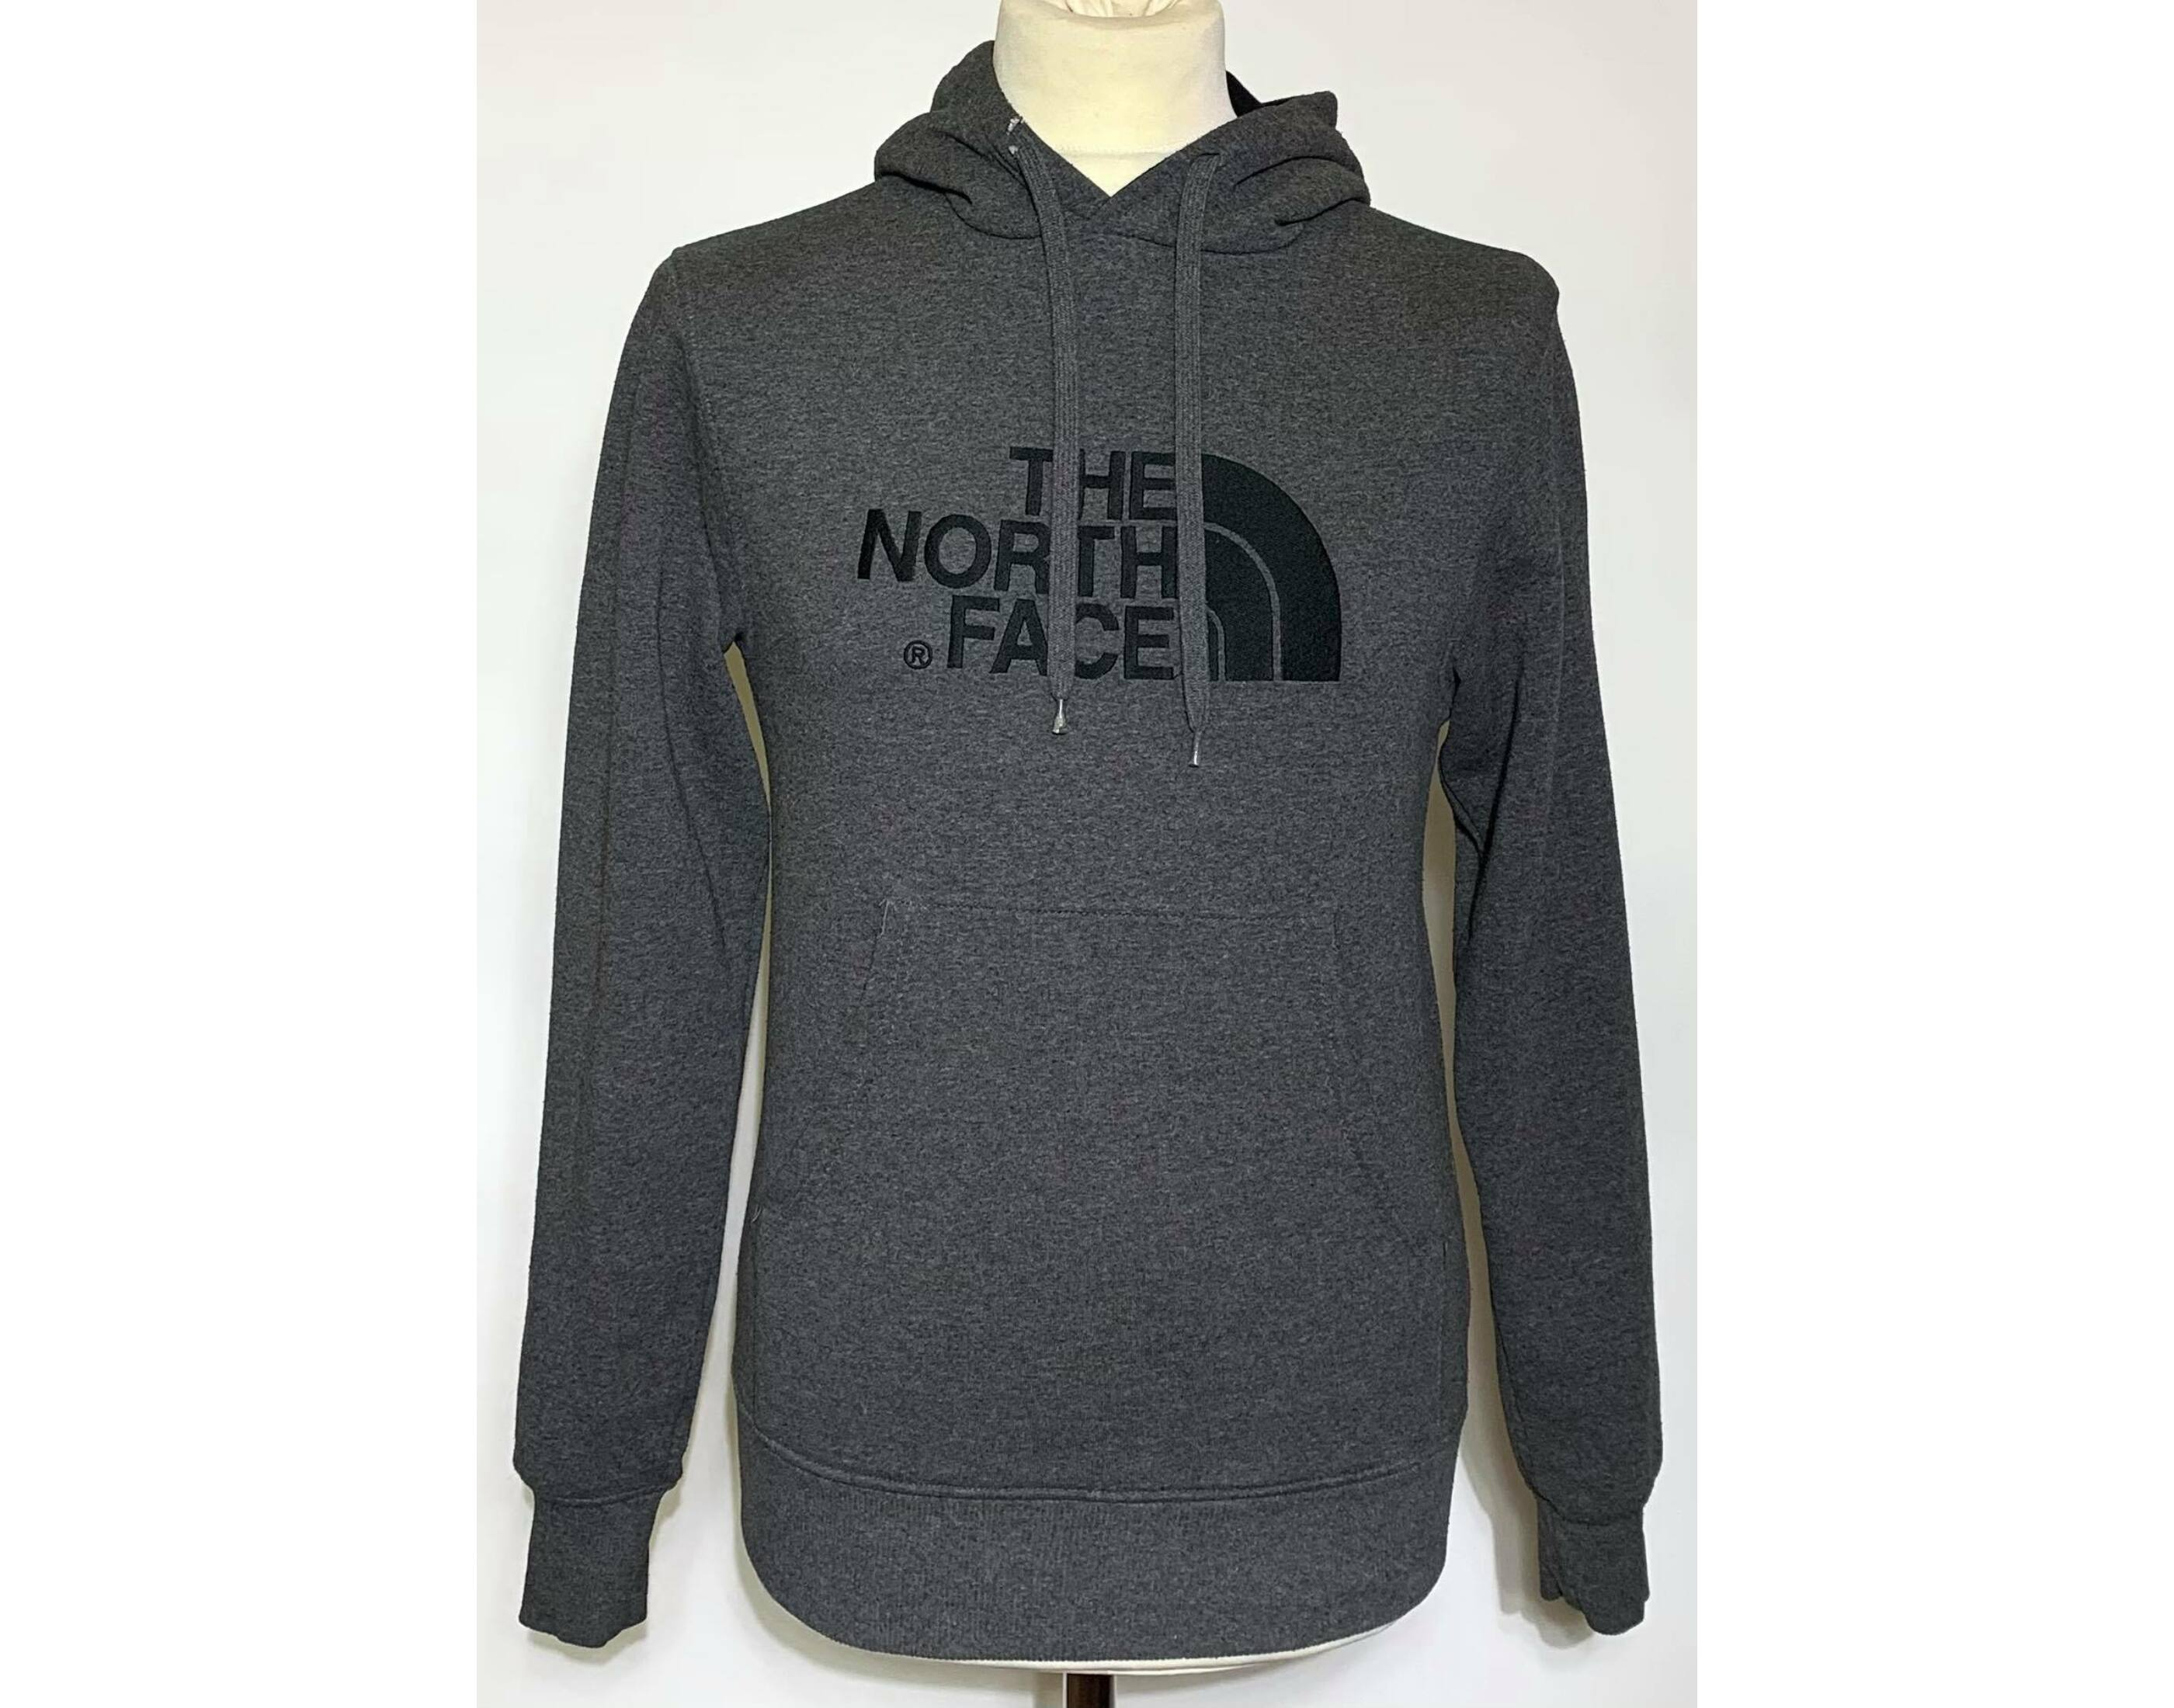 The North Face pulóver (XS)